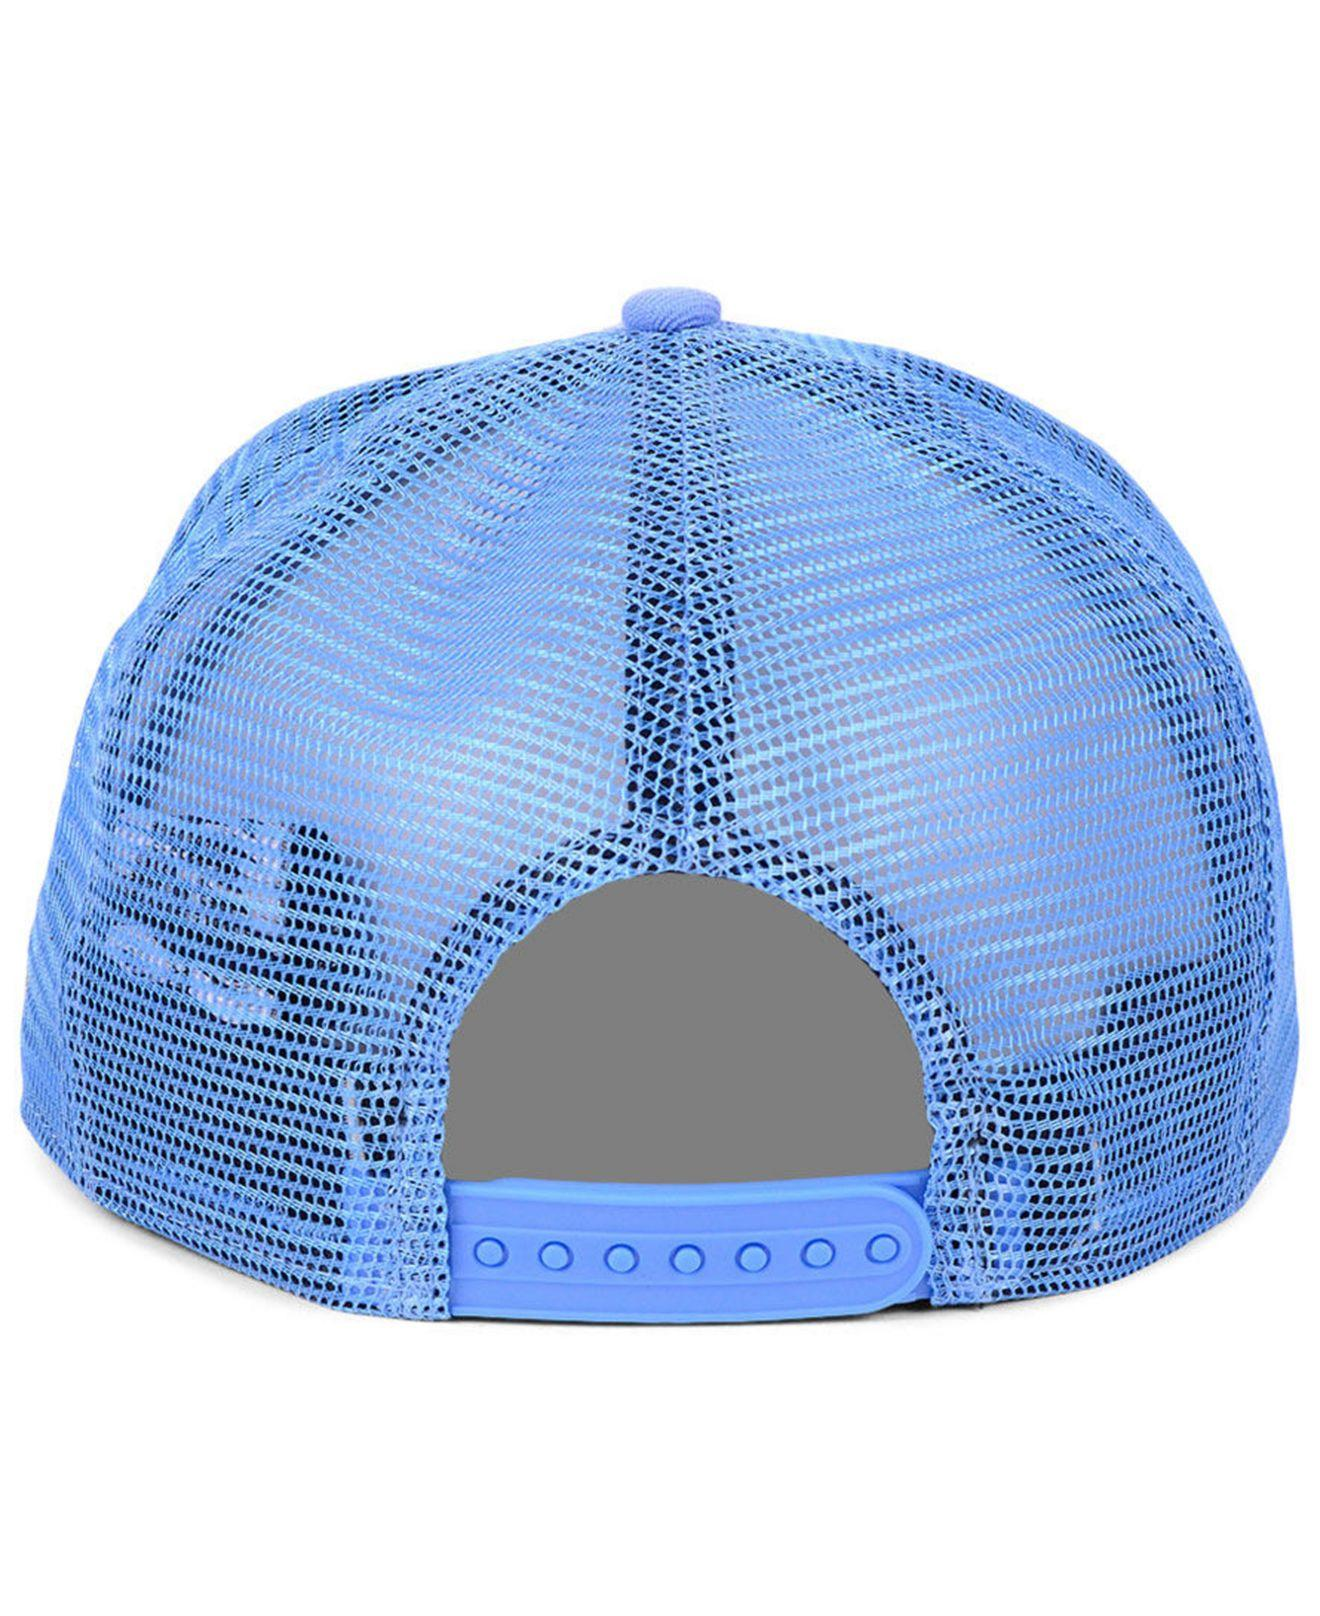 buy online f693e 369f6 KTZ - Blue Los Angeles Angels Timeline Collection 9fifty Cap for Men - Lyst.  View fullscreen